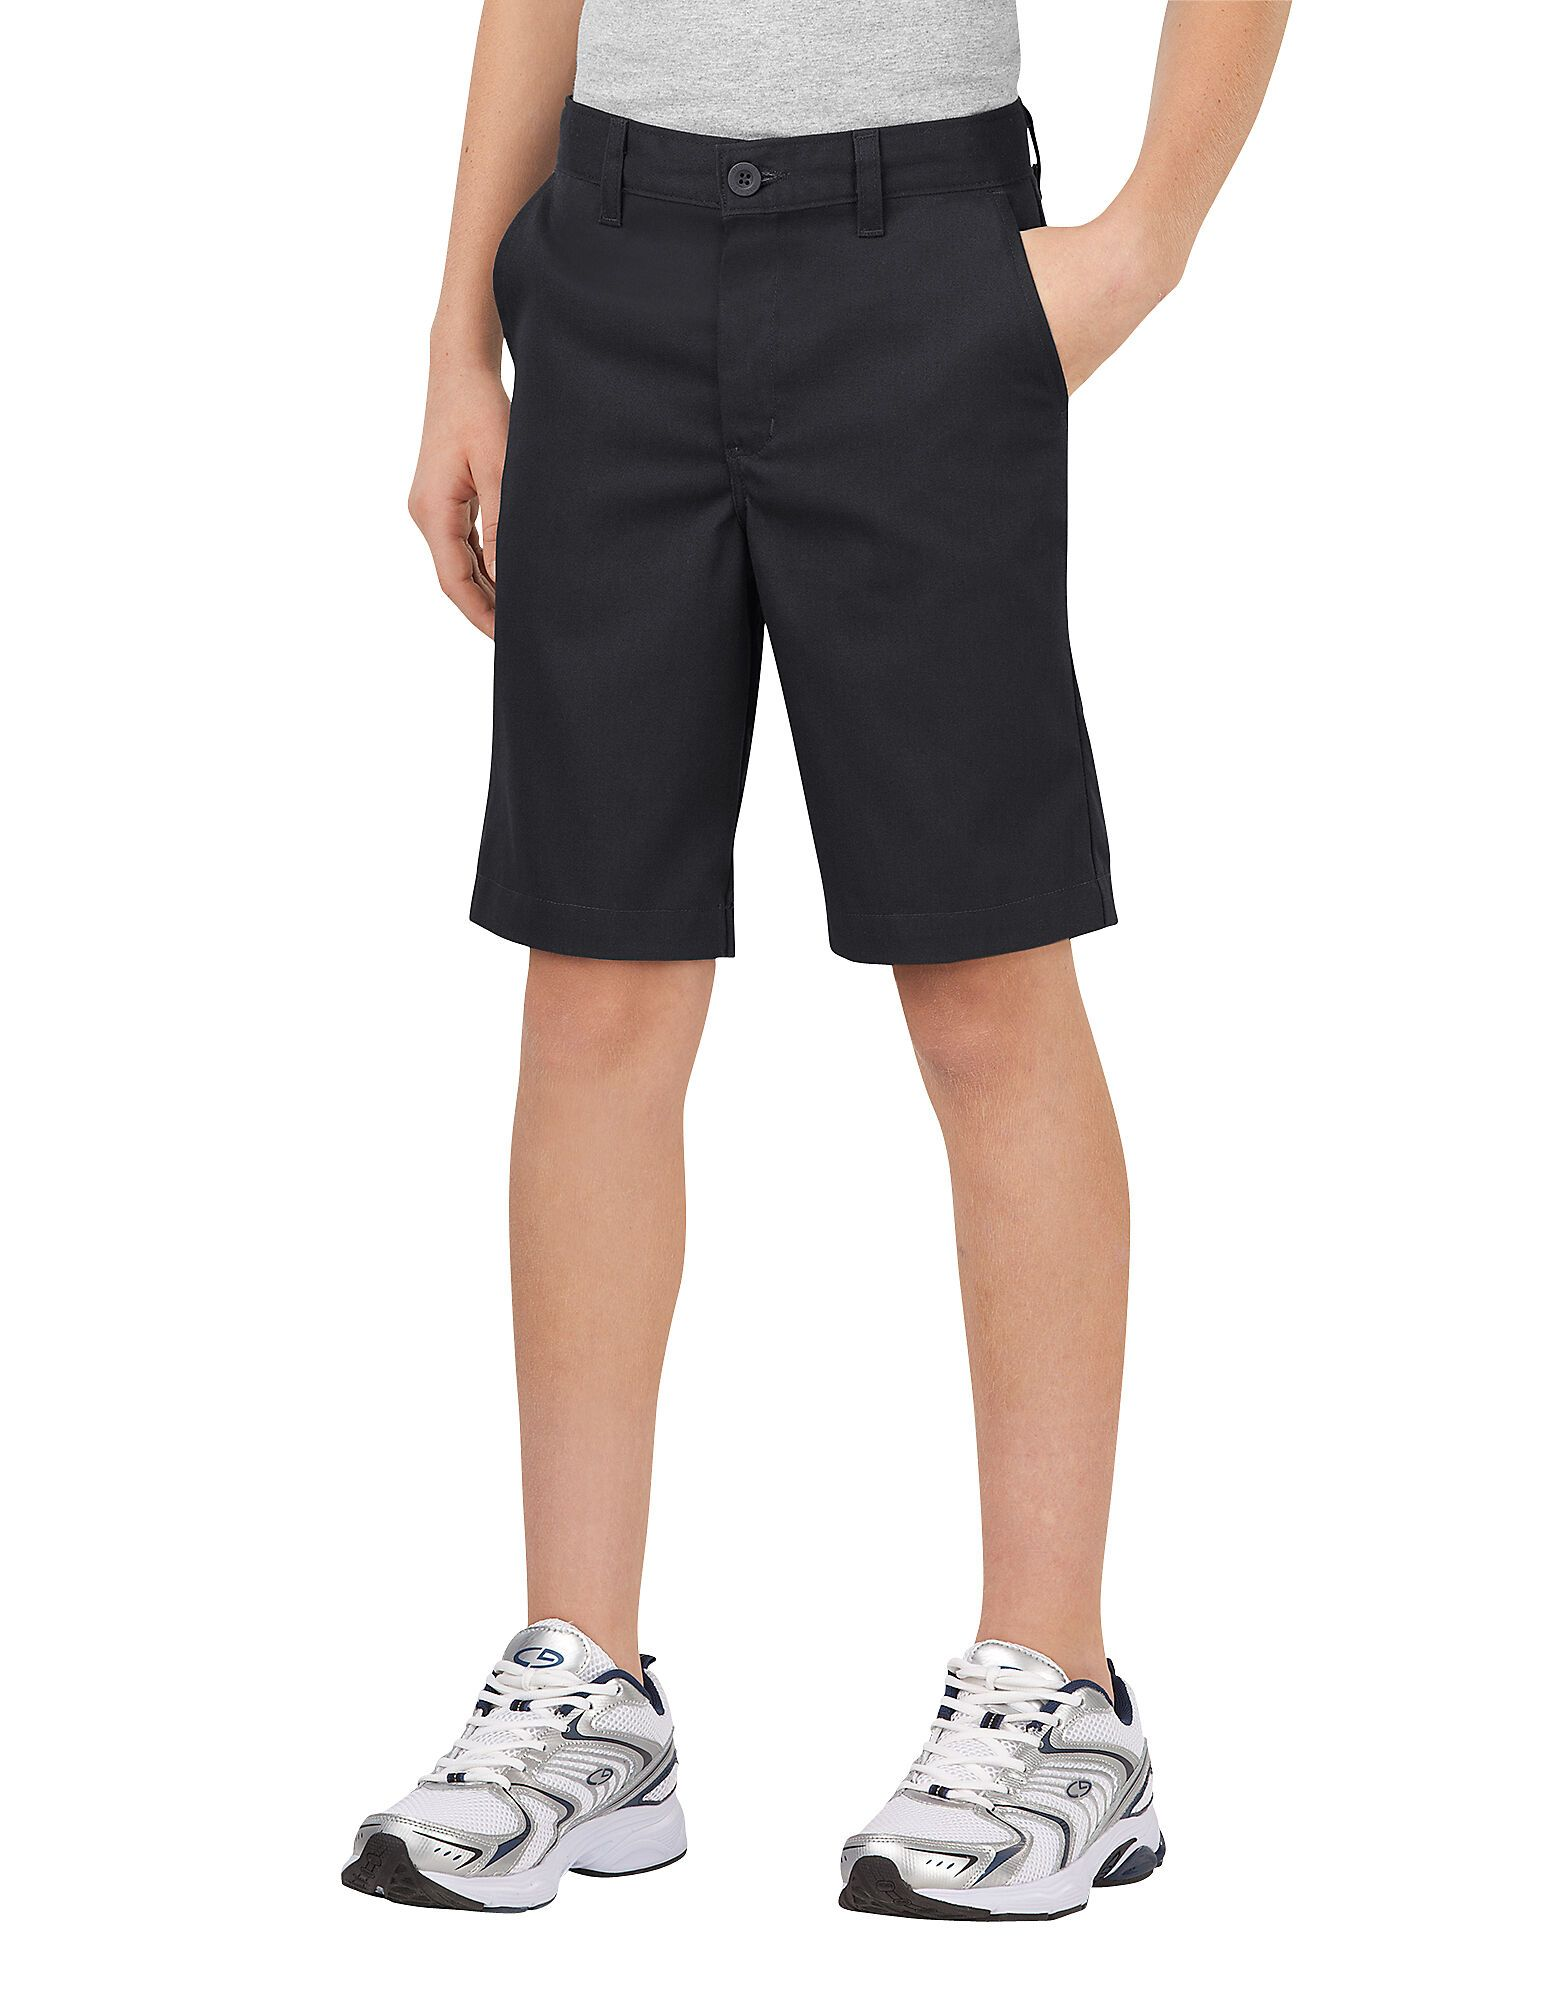 Dickies Boys Boys FlexWaist® Classic Fit Ultimate Khaki Shorts, 8-20-DK